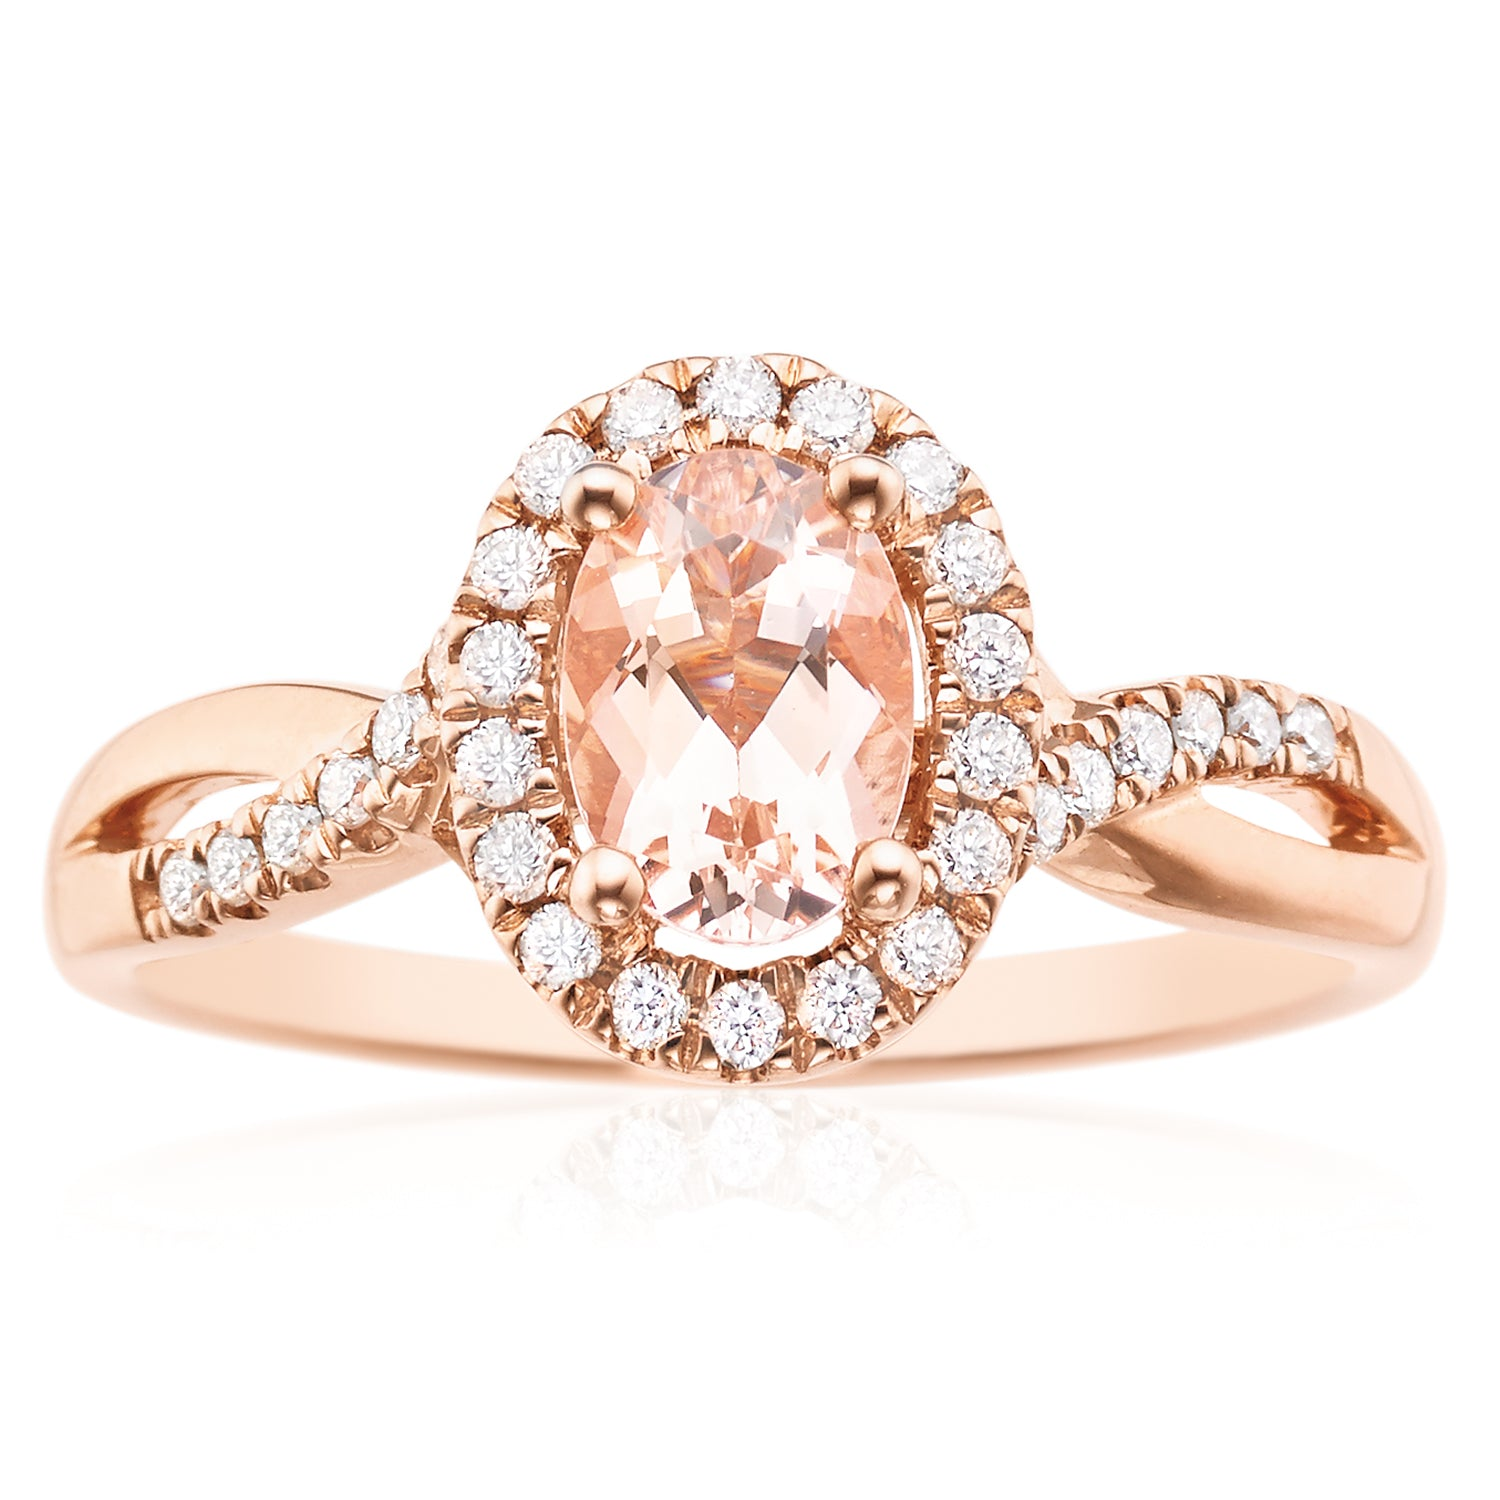 9ct Rose Gold Oval Cut Morganite with 0.22 CARAT tw of Diamonds